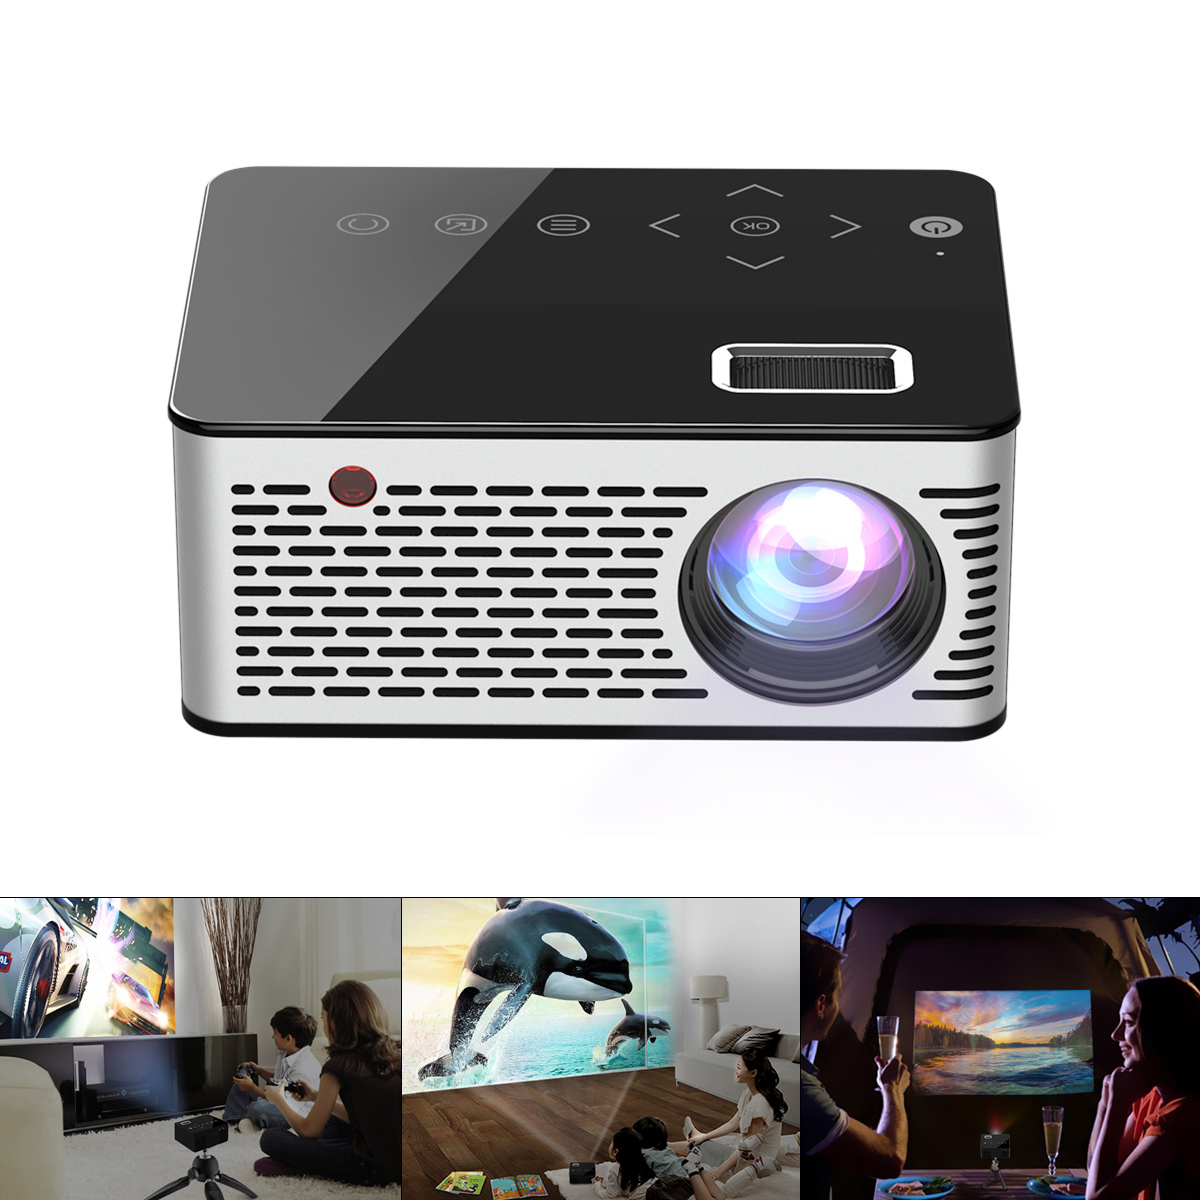 T260 Portable TET LED LCD <font><b>Projector</b></font> 500 LM 320x240P <font><b>HD</b></font> <font><b>Mini</b></font> <font><b>Projector</b></font> Home Theater Media Player for 116 Inch Screen Projection image